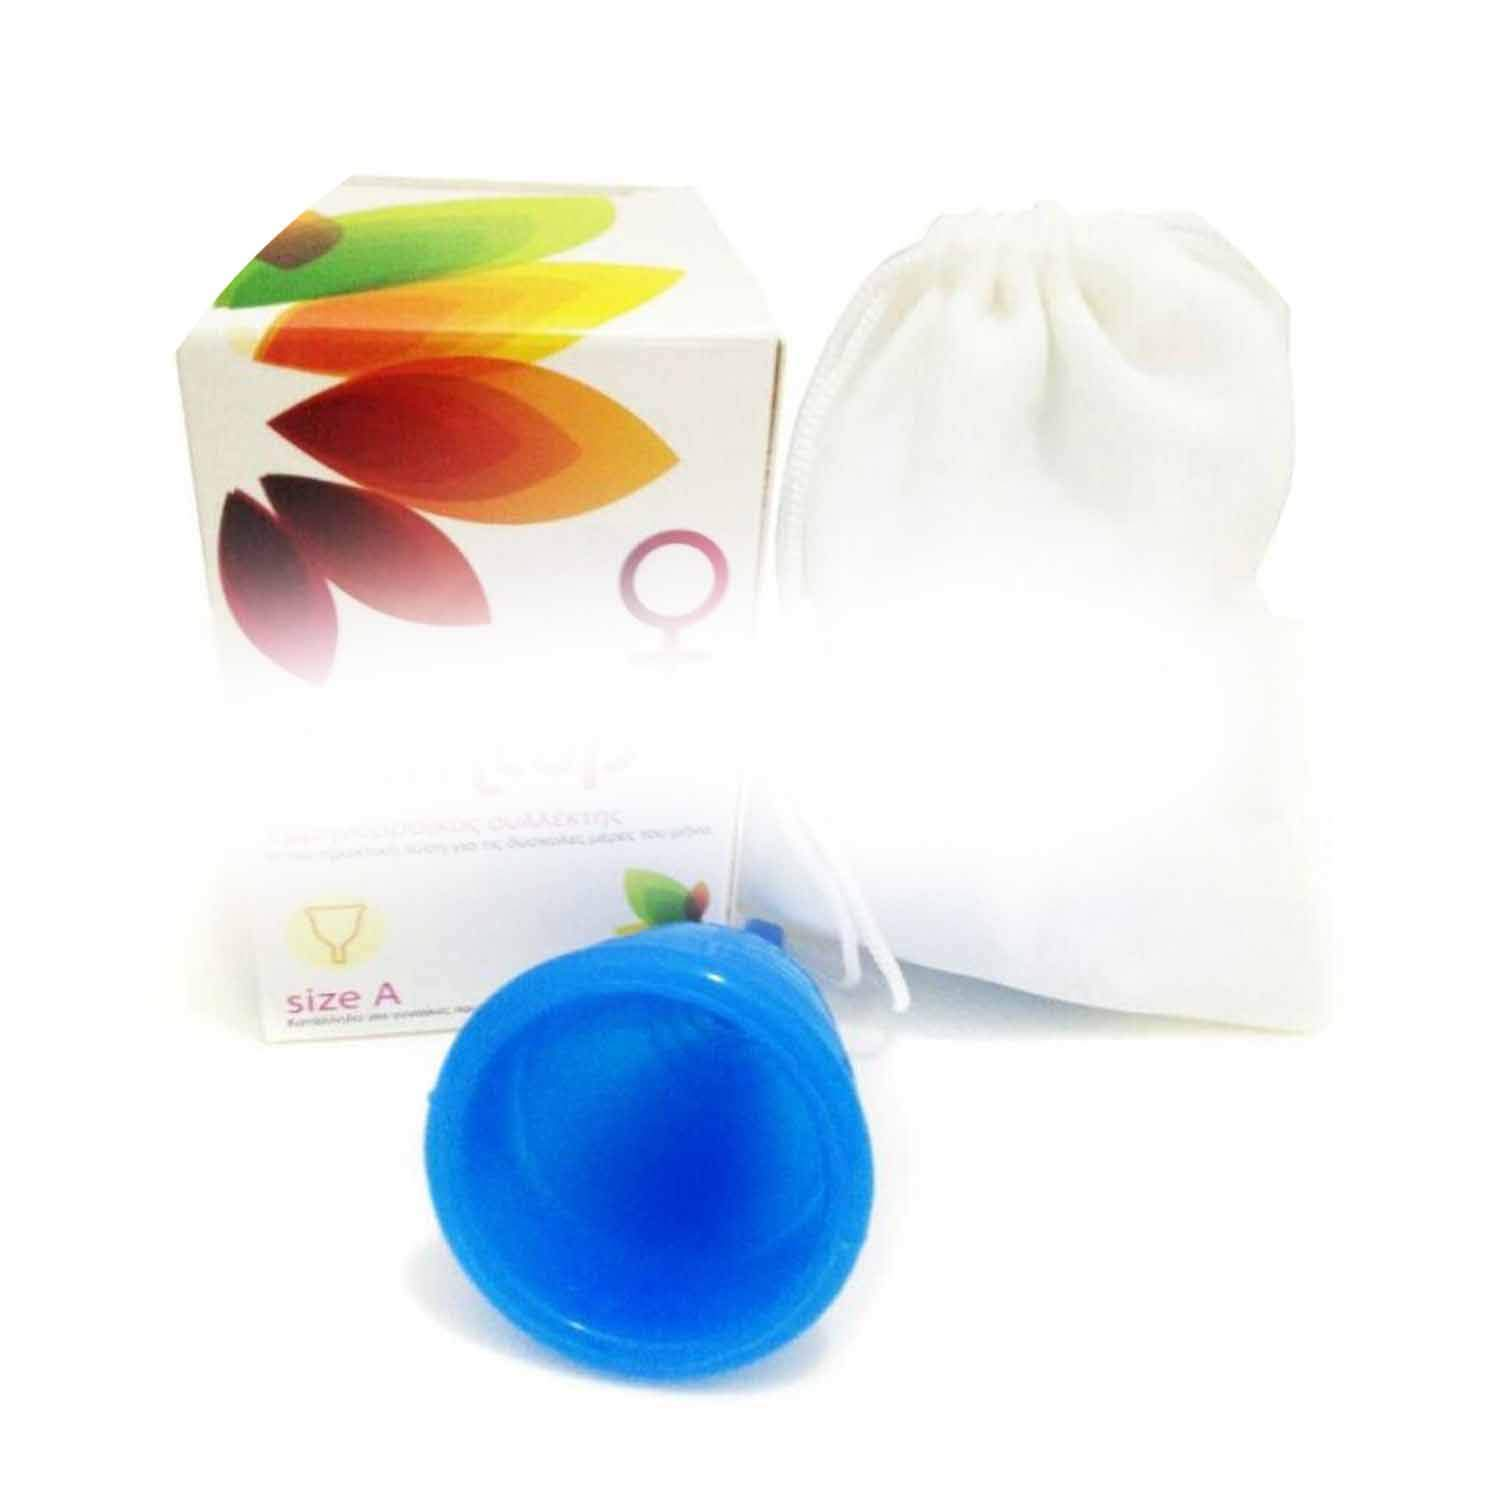 50pcs Feminine Hygiene Product - Grade Silicone Menstrual Cup/y Cup 5 Crs for Choose,Pink,Size S